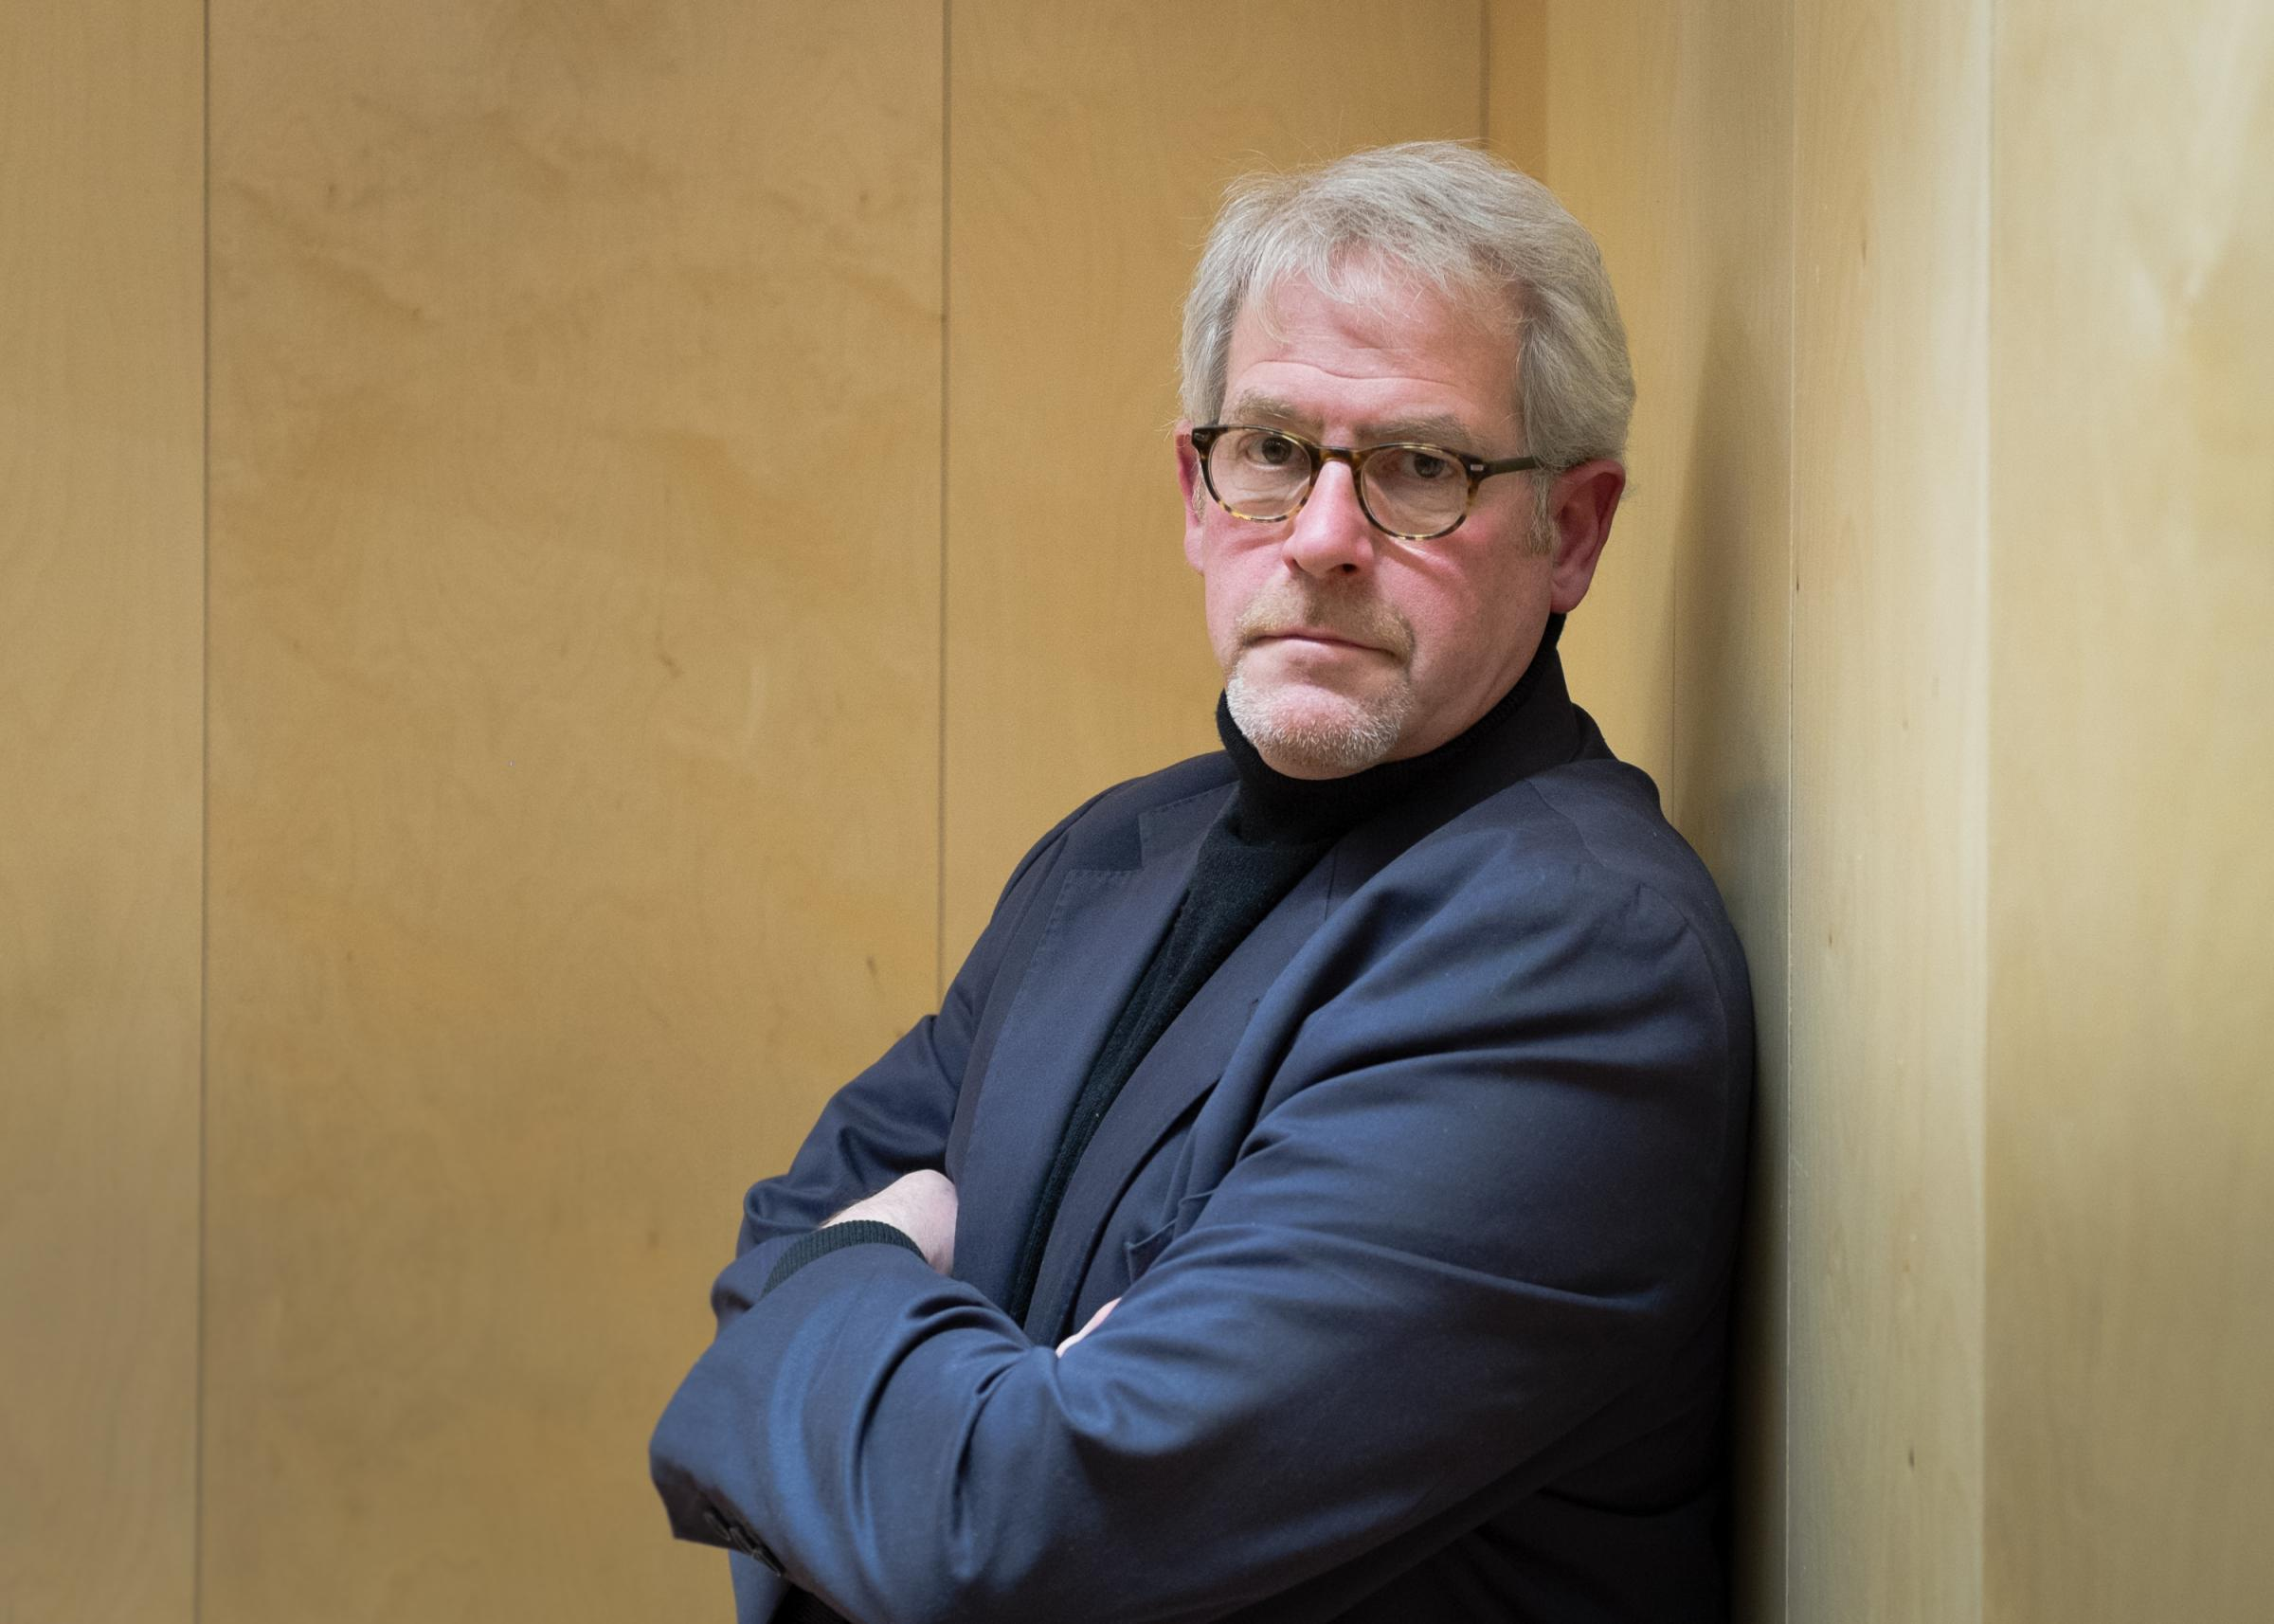 Trowbridge author Tim Tate, whose book with Brad Johnson about the assassination of Robert F Kennedy has been nominated for a top award. Photo: Andy Boag